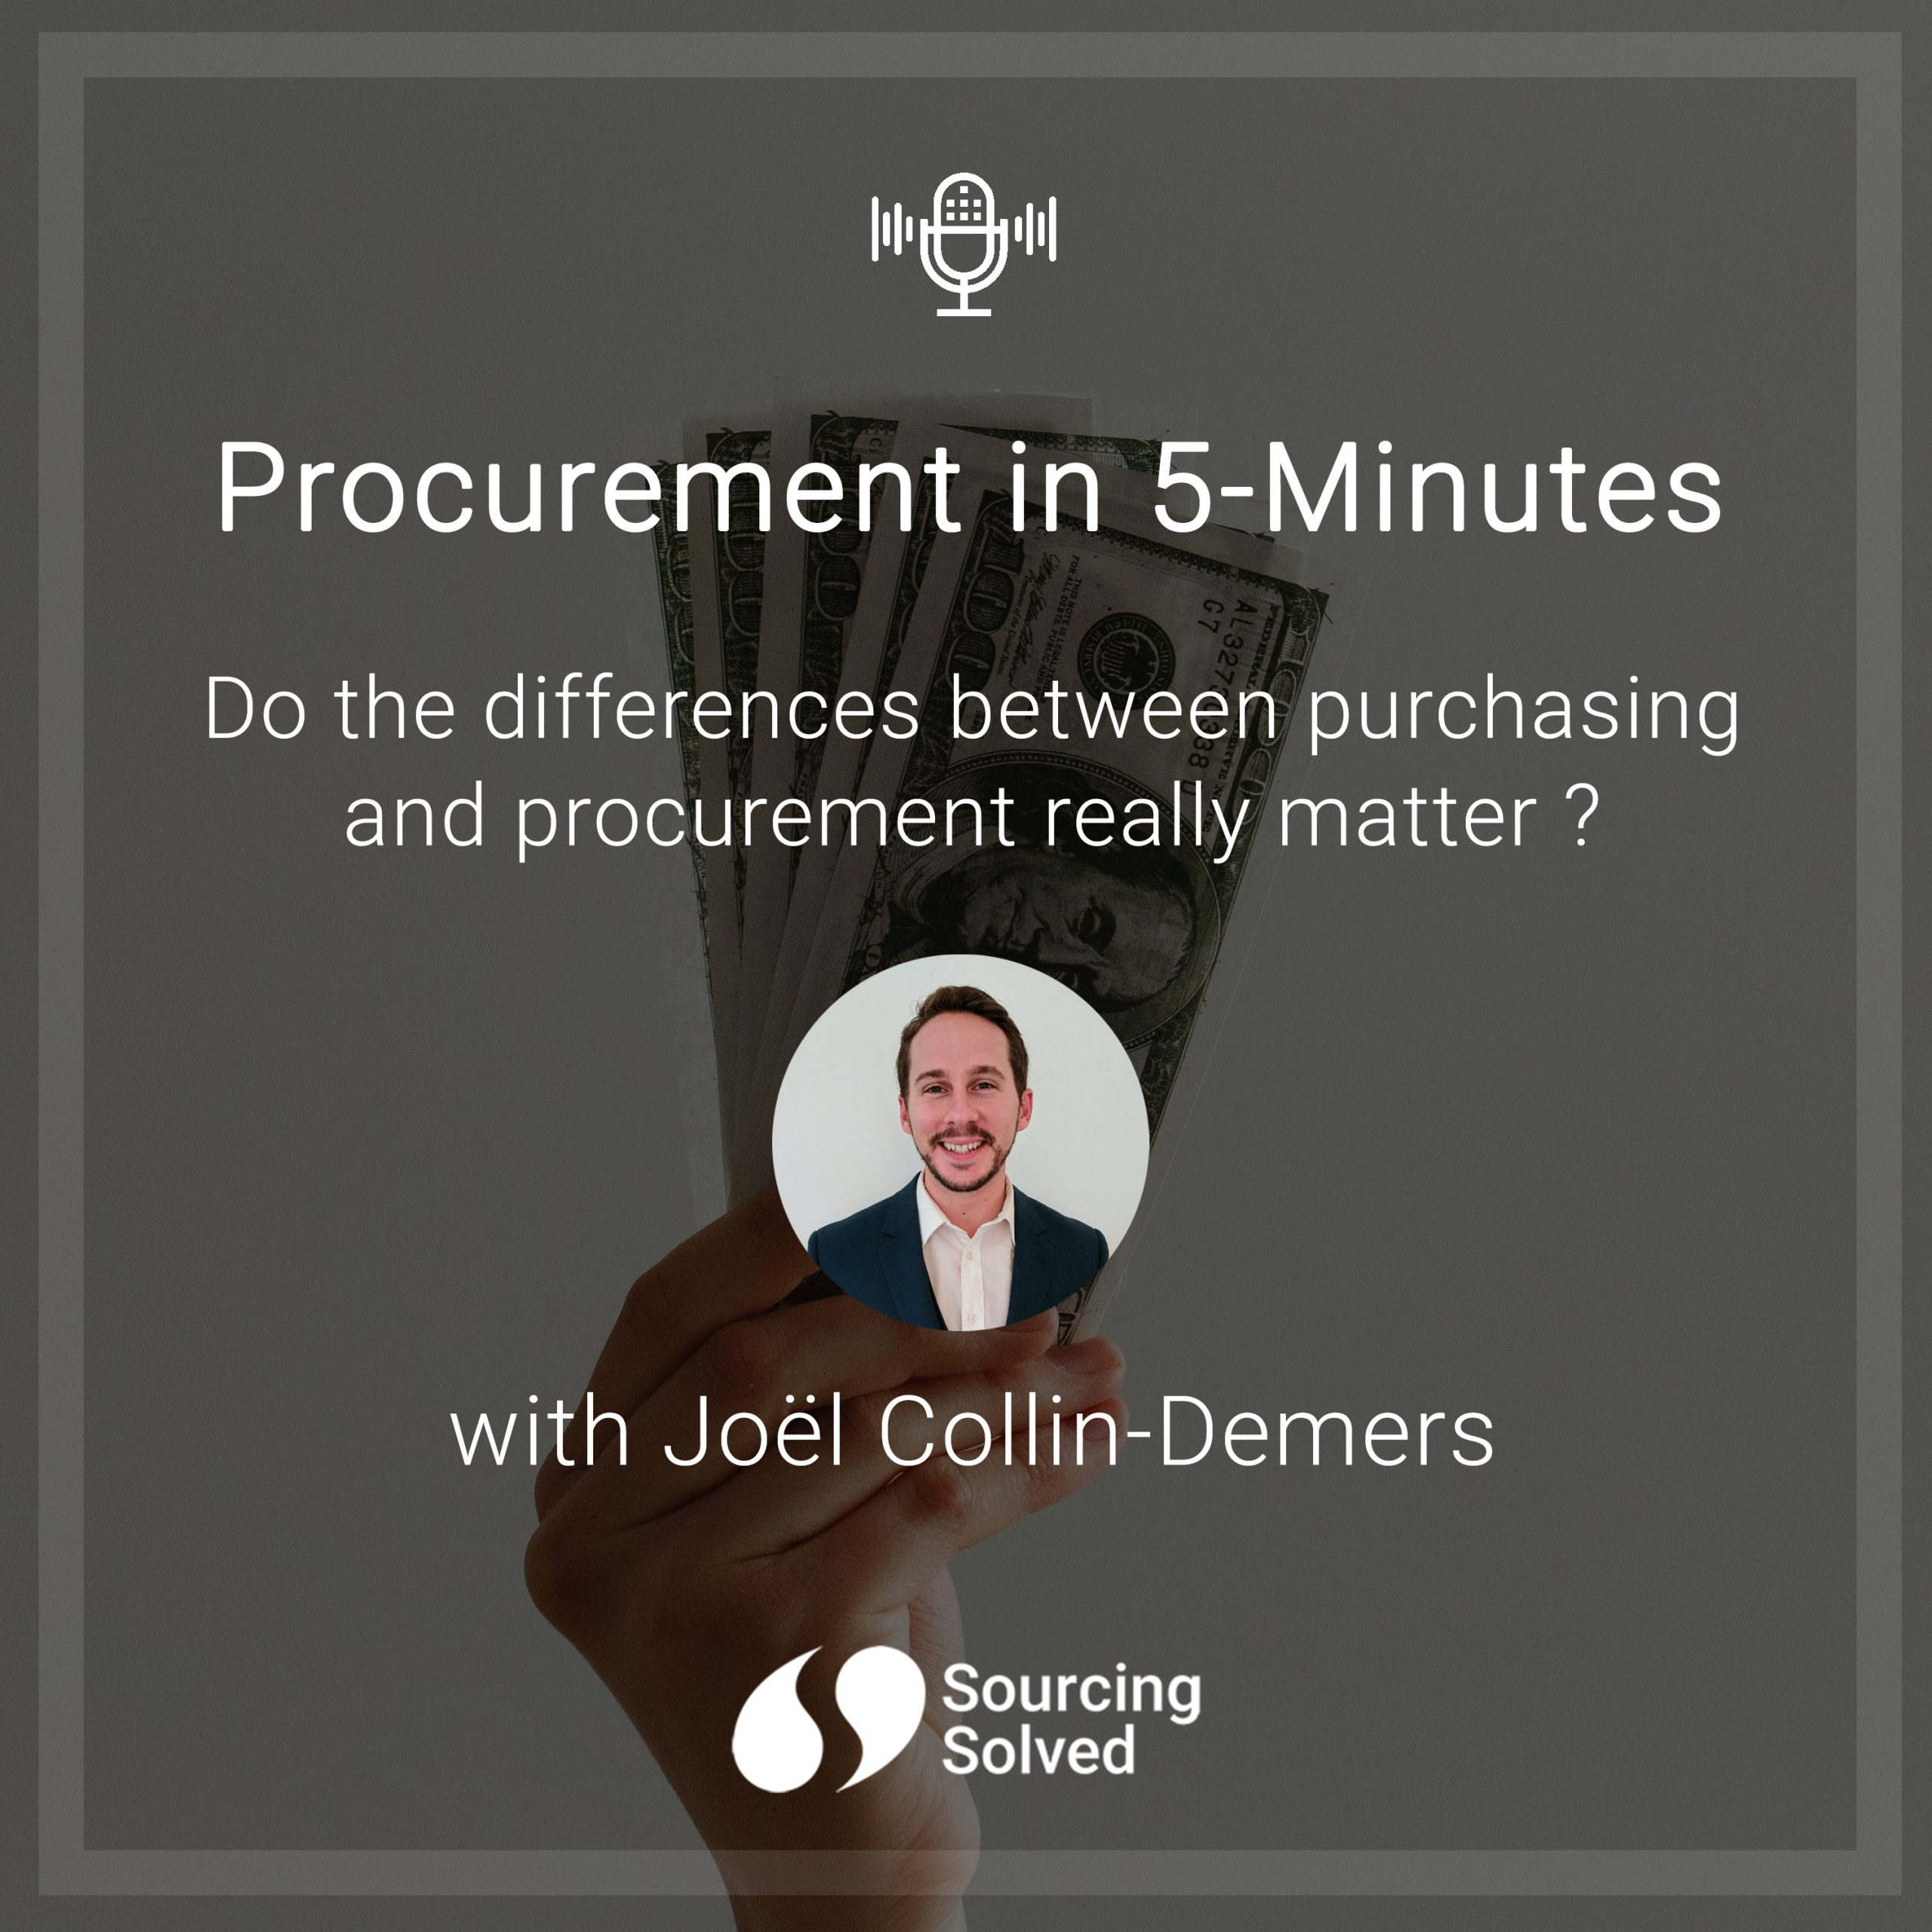 Procurement in 5-Minutes: Do the differences between purchasing and procurement really matter?